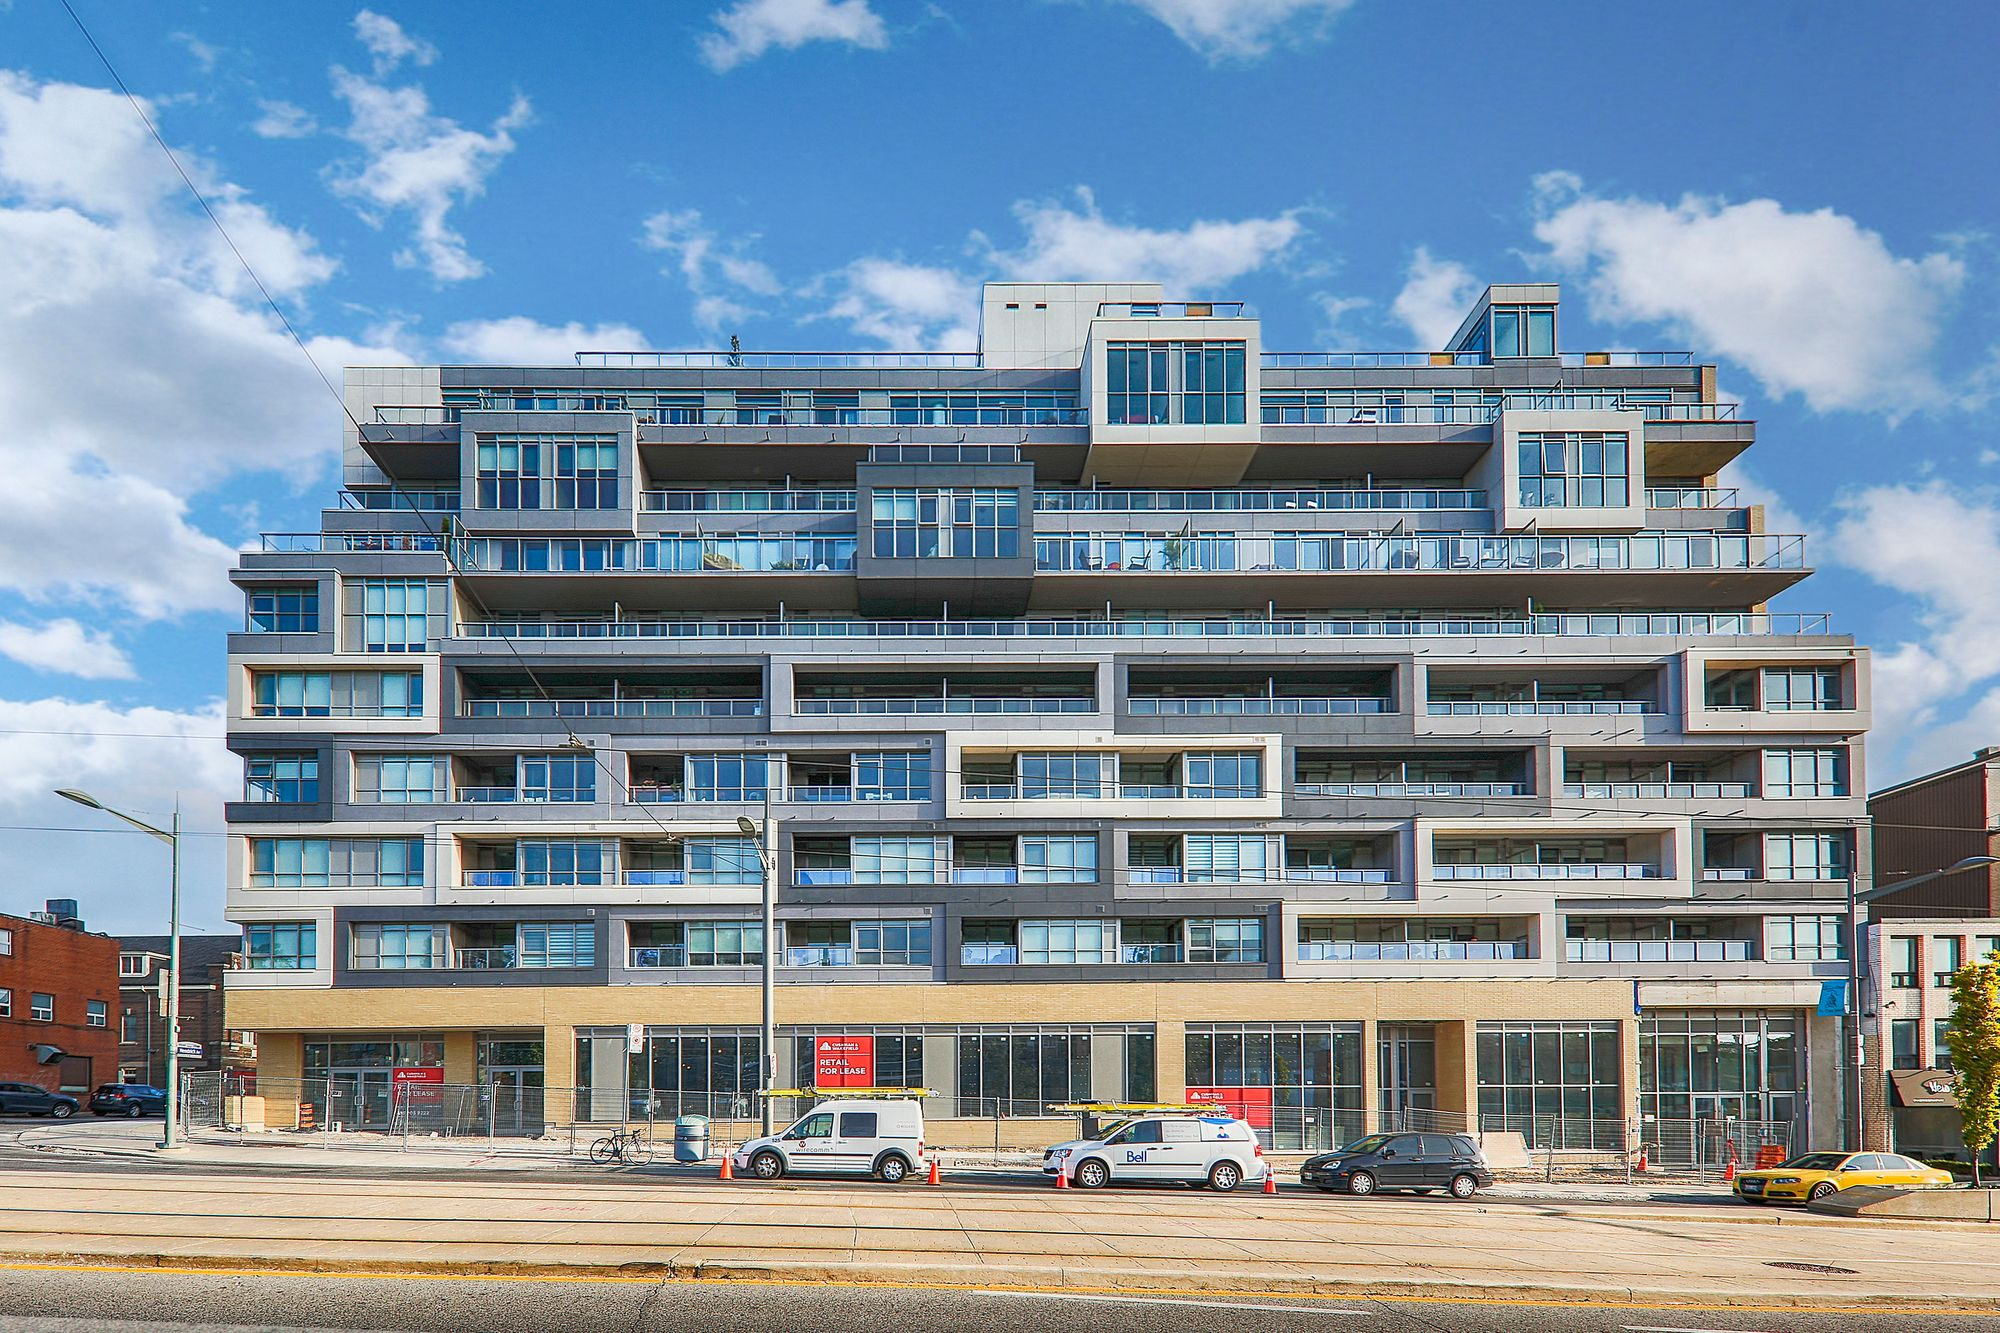 829-835 St Clair Ave W. This condo at The Nest Condos is located in  Midtown, Toronto - image #2 of 2 by Strata.ca